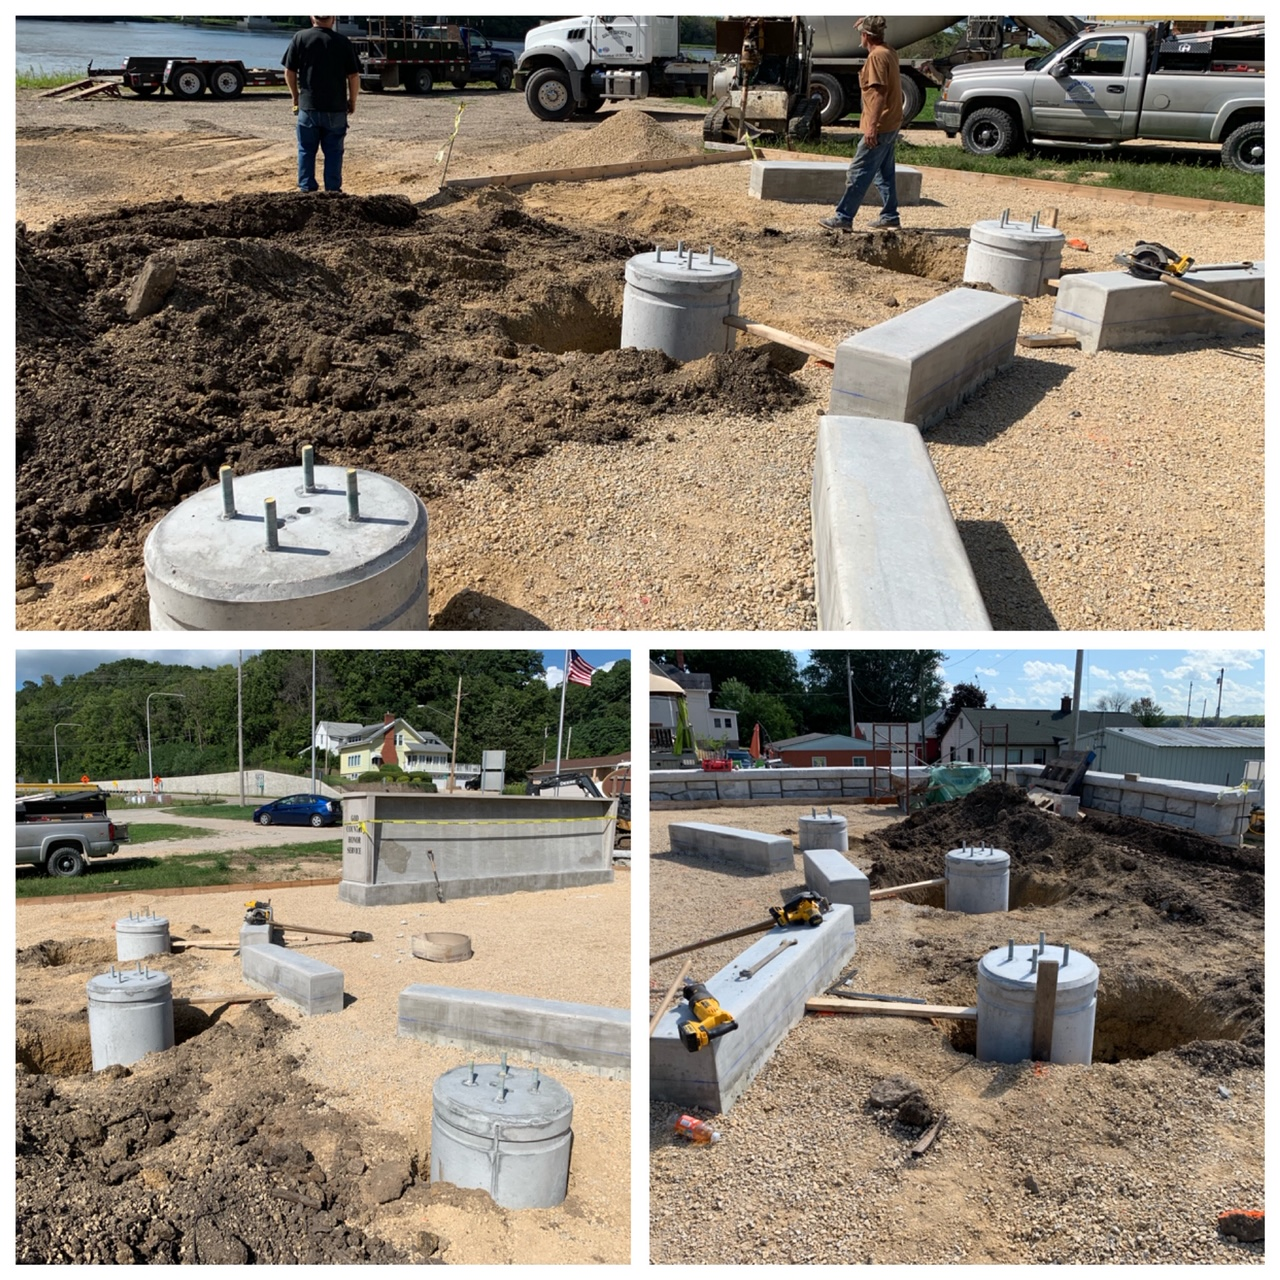 The Flagpole foundations are in place ready to install the flagpoles.